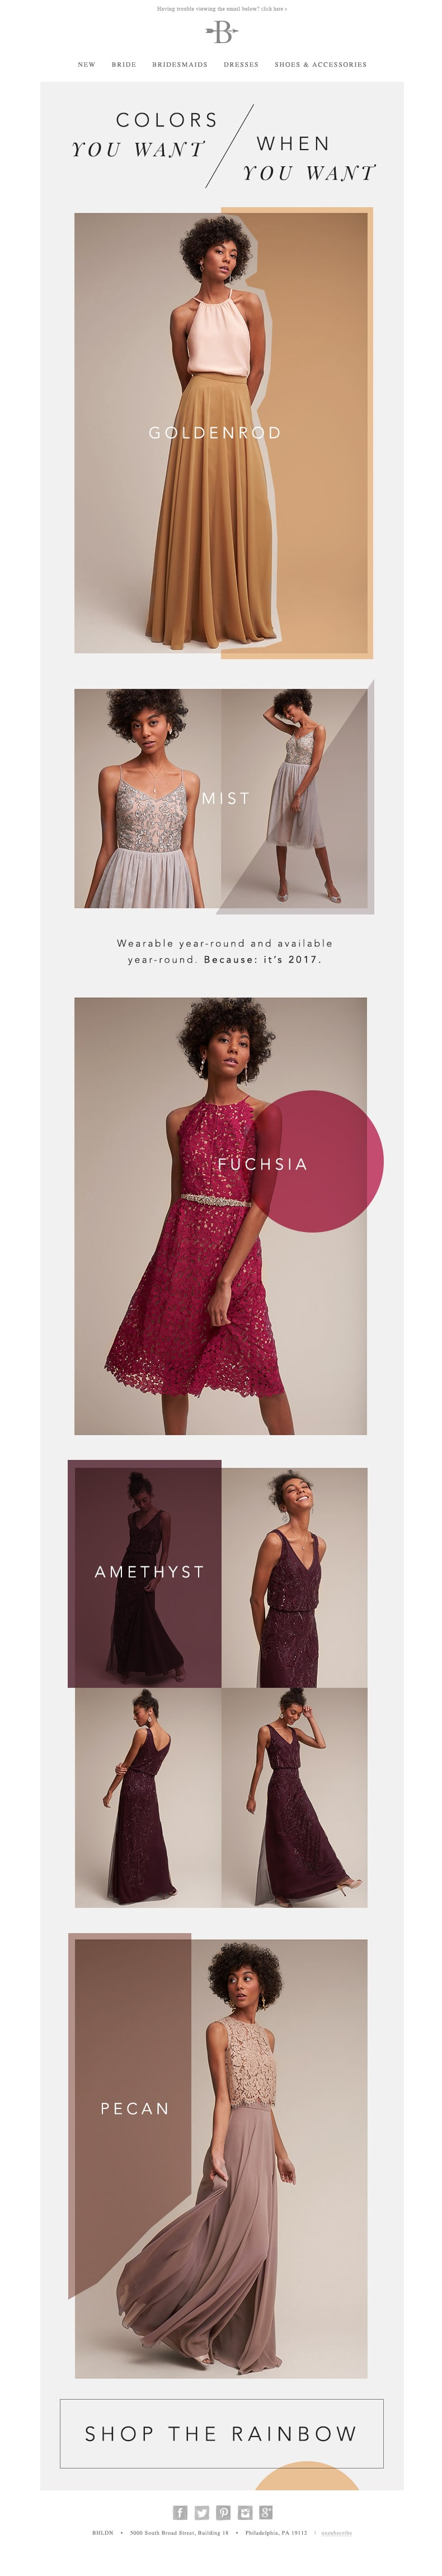 BHLDN Emails